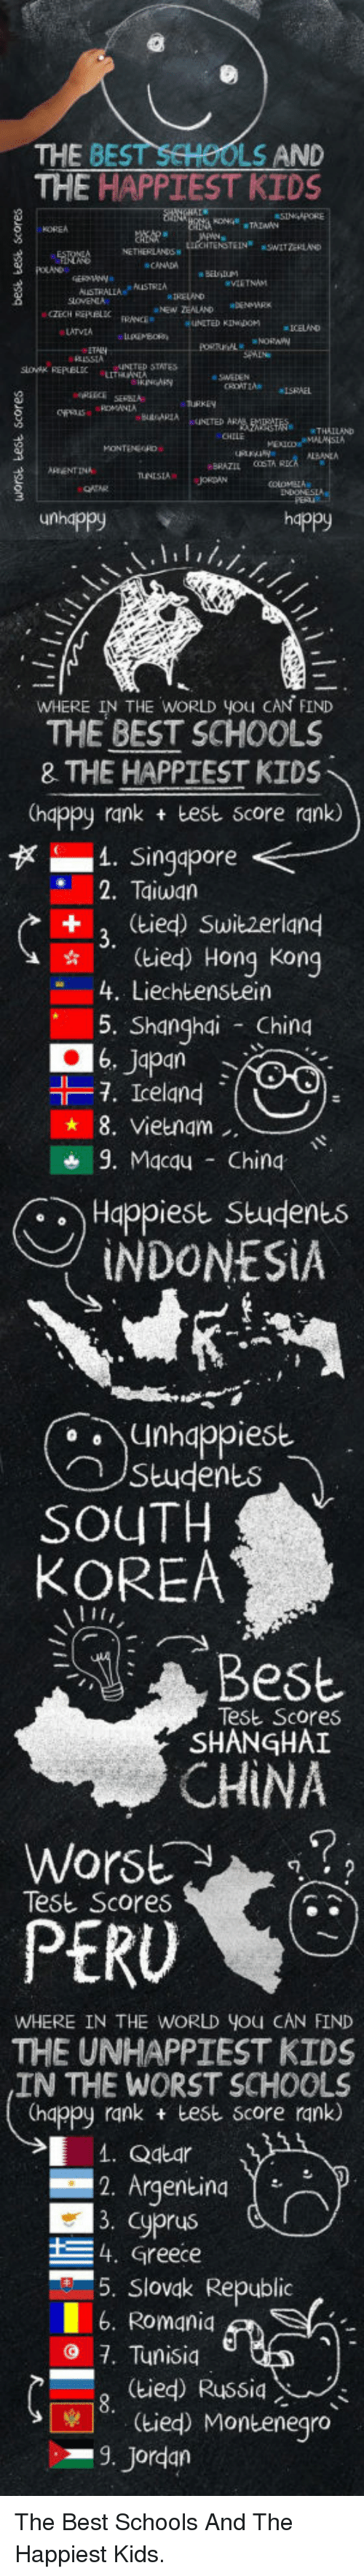 The Worst, China, and Argentina: THE  BEST SCHOOLS  THE HAPPIEST KIDS  ND  TATES  THAILAND  happy  WHERE IN THE WORLD you CAN FIND  THE BEST SCHOOLS  8 THE HAPPIEST KIDS  (happy rank test score rank)  1. Singapore  2. Taiwan  (tied) Switzerland  ..  ☆:  (tied) Hong Kong  4. Liechtenstein  5. Shanghdi China  06, Japan  -7. Iceland  (  8. Vietnam  9. Macqu Ching  Happiest Students  INDONESIA  unhappiest  ︵ ) Student  SOUTH  KOREA  Best  Te6b Scores  SHANGHAI  CHİNA  Worst?  Test Scores  PERU  WHERE IN THE WORLD YOu CAN FIND  THE UNHAPPIEST KIDS  IN THE WORST SCHOOLS  (happy rank test score rank)  . Qatar  2. Argentina  3. Cyprus  4, Greece  -5. Slovak Republic  6. Romaniq  - (tied) Russia  Jordan  7. Tunisia  (tied) Montenegro <p>The Best Schools And The Happiest Kids.</p>